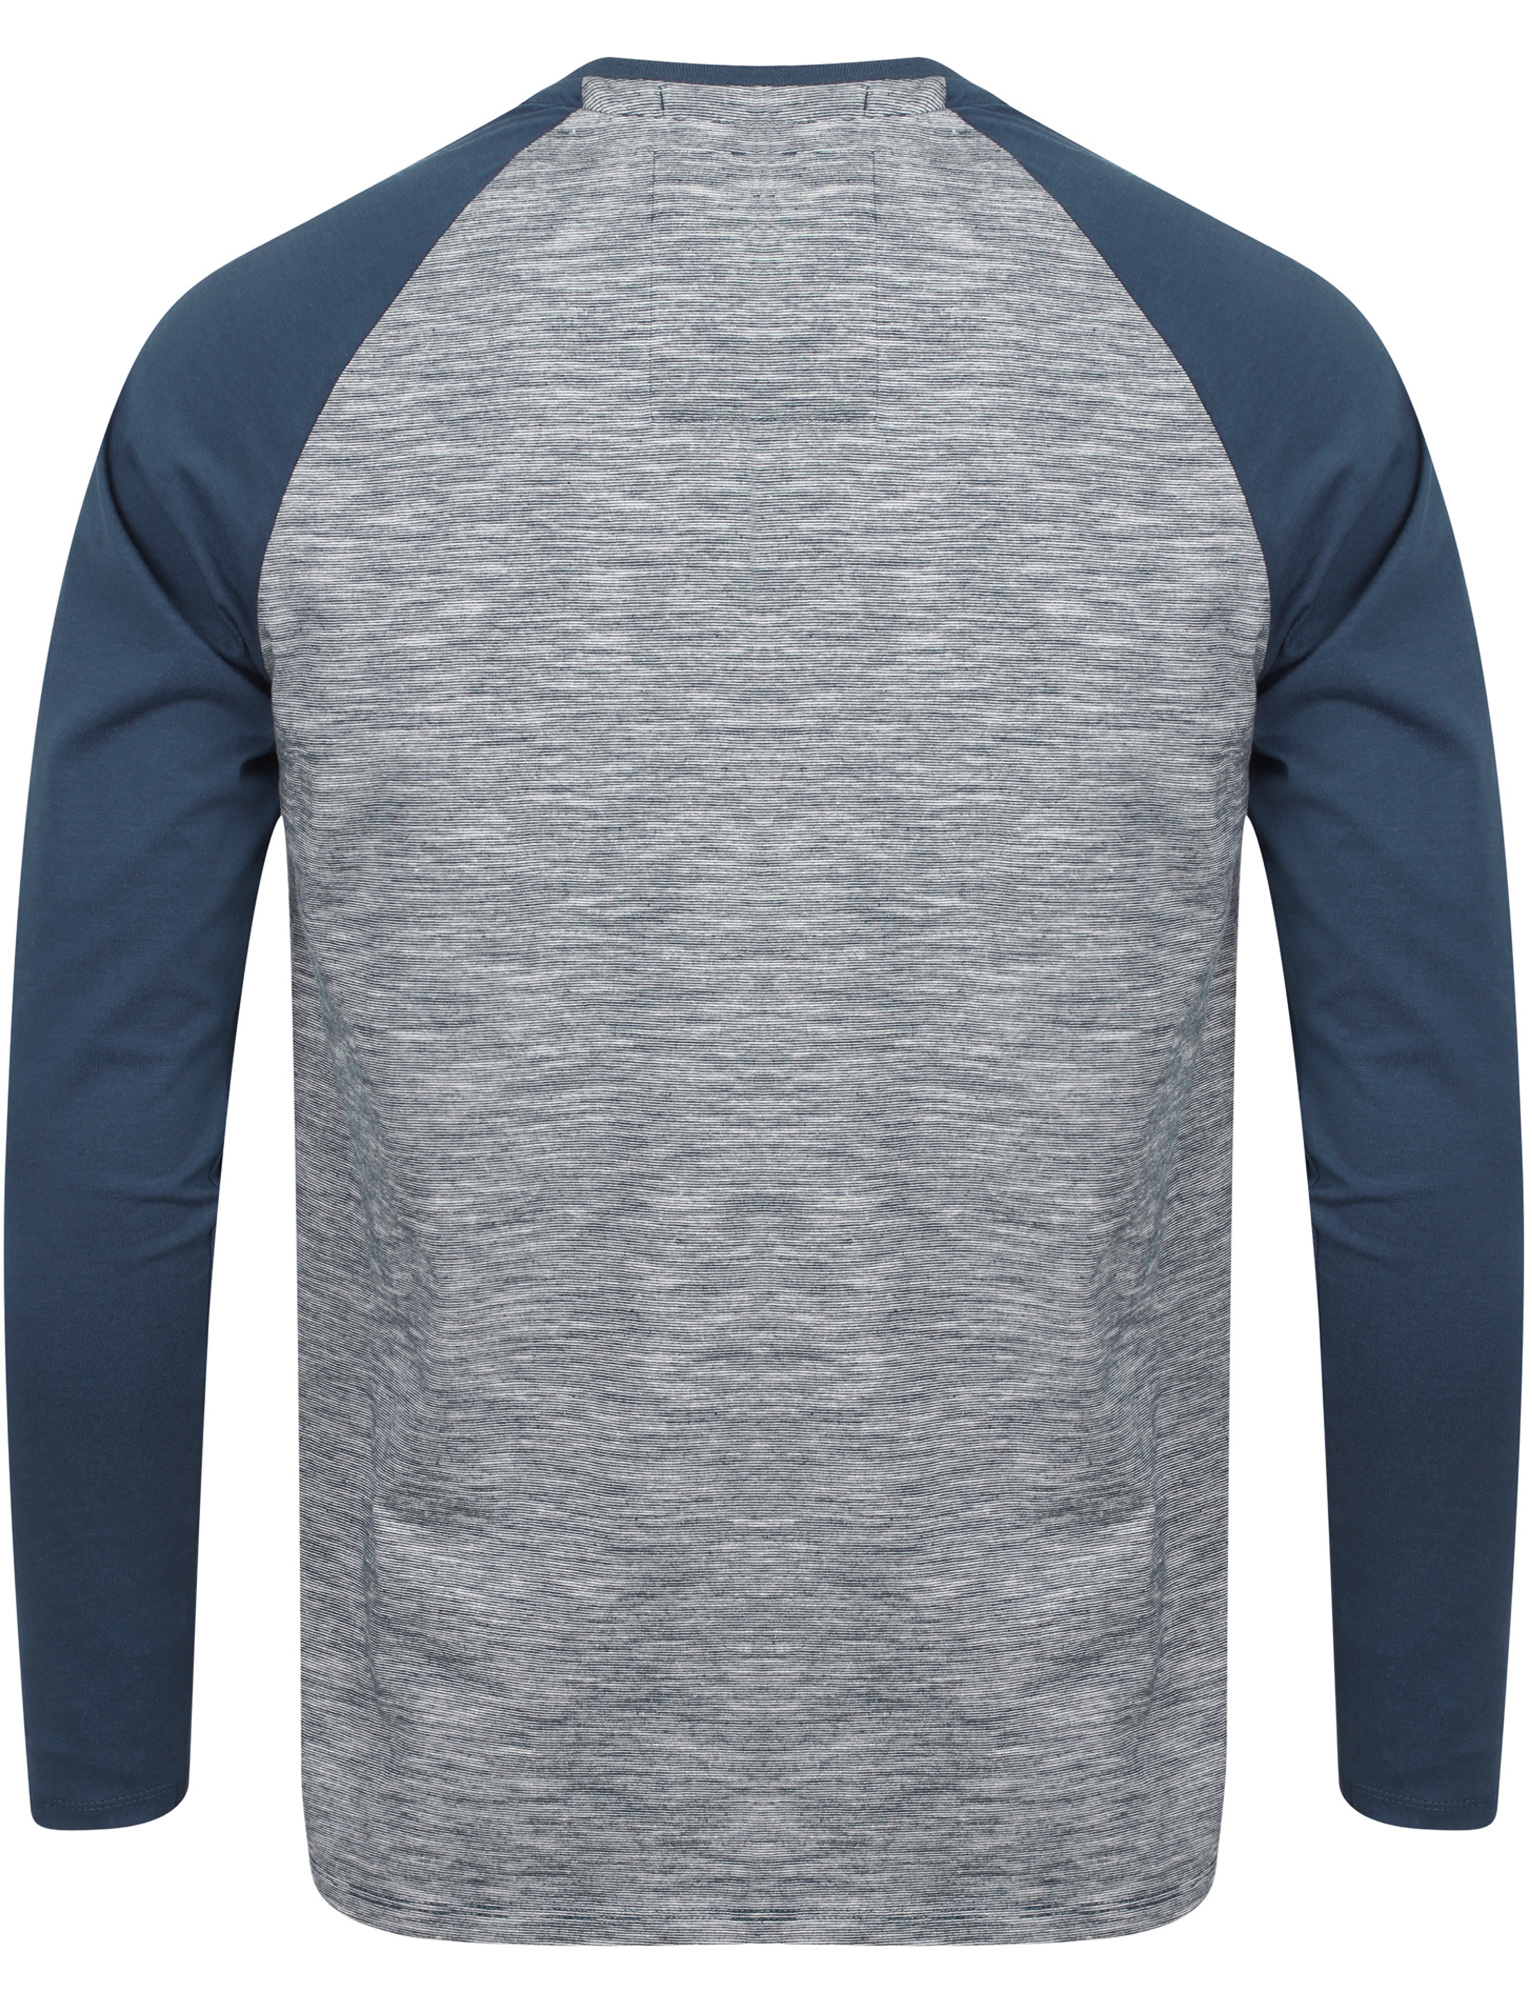 New-Mens-Tokyo-Laundry-Branded-Soft-Jersey-Long-Sleeve-Tops-T-Shirts-Size-S-XL thumbnail 11